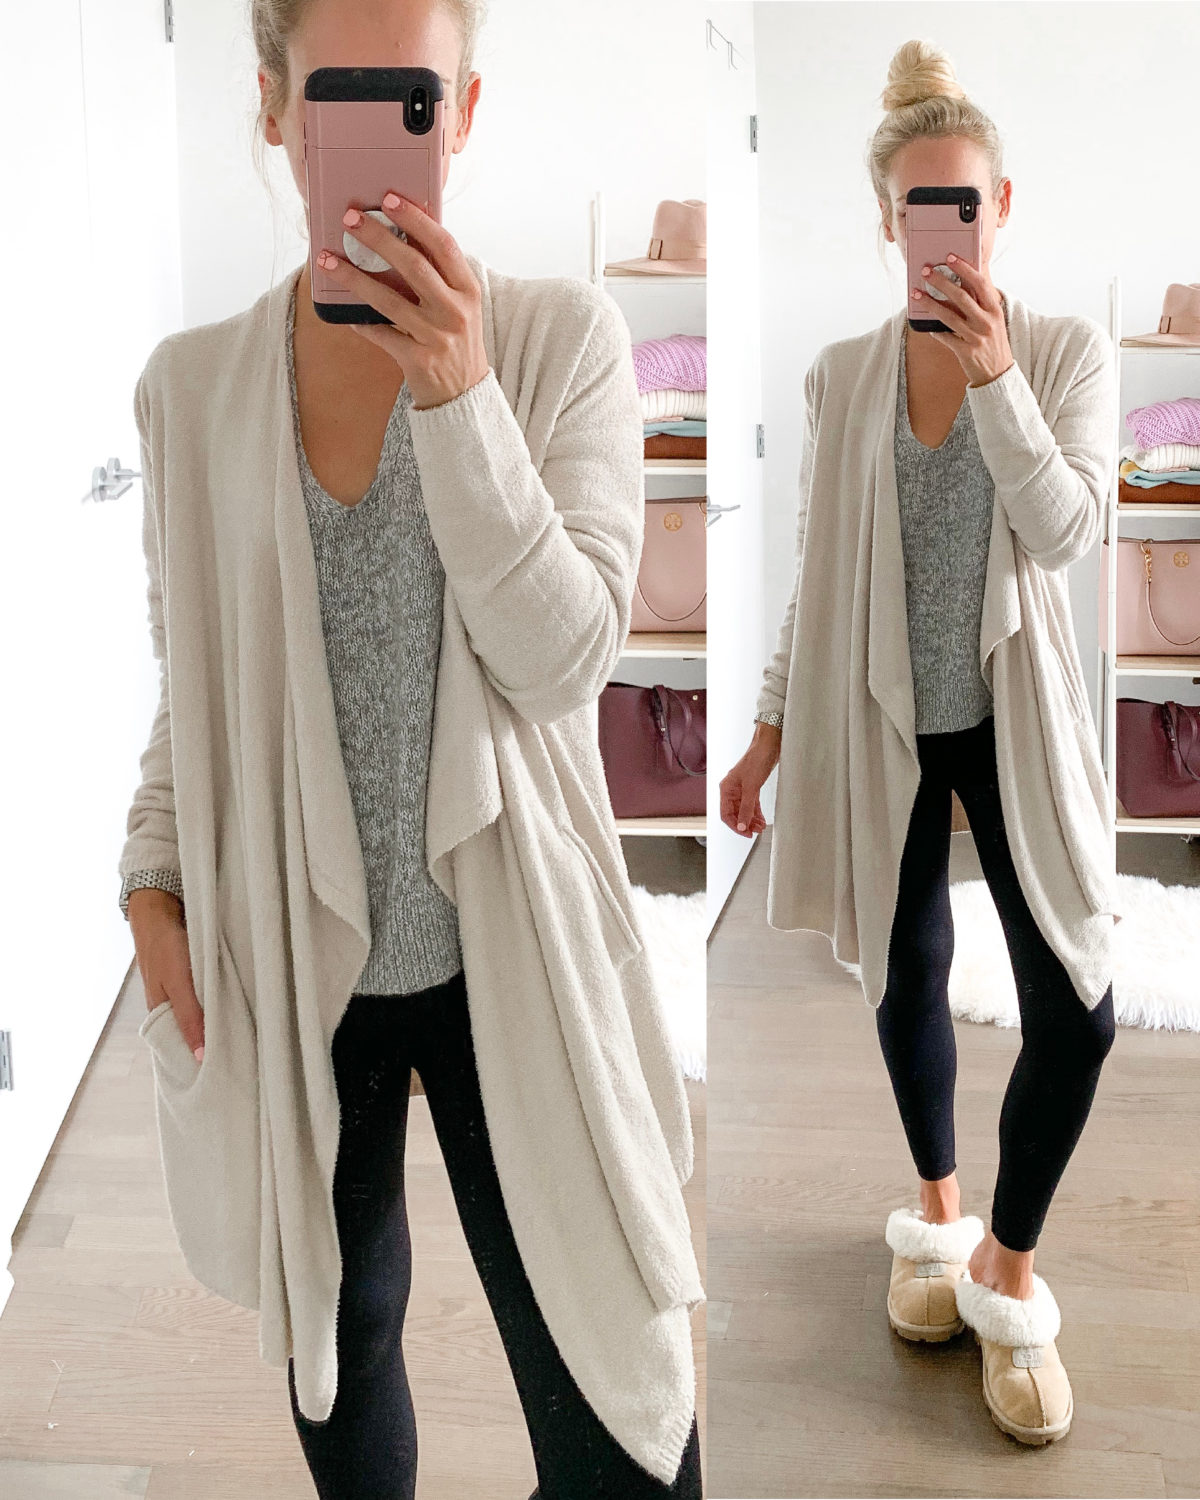 """Barefoot Dreams SIZE INFO XS=0-2, S=4-6, M=8-10, L=12-14, XL=16. DETAILS & CARE A long lounge cardi is made from a sumptuous, lightweight knit that keeps you cozy around the house or out on errands. 33 1/2"""" length (size Medium) Open front Long sleeves Front patch pockets 75% nylon, 25% rayon Machine wash, tumble dry Imported Lingerie Item #5825381 Free Shipping & Returns See more GIFT OPTIONS Get free gift wrap when you pick up your order at a Nordstrom store! Choose gift options when you check out. Some items may not be eligible for certain gift wrap options. Pickup & In-Store Gift message (free) DIY gift kit (free) Packaged in a Nordstrom box (free) Wrapped with signature gift wrap (free) Delivery Gift message (free) DIY gift kit ($2) Packaged in a Nordstrom box ($3) Need help finding the perfect gift? We've got you covered. Shop Gifts BAREFOOT DREAMS® Barefoot Dreams® was founded in 1994 by Annette Cook. She sought out the softest flannels, silkiest washable satins and coziest knits in an array of colors that were both elegant and soothing to the senses. Today's Barefoot Dreams collection features blankets and quilts, newborn and toddler wear, distinctive accessories and a range of products for grownups. CozyChic Lite Long Cardigan"""